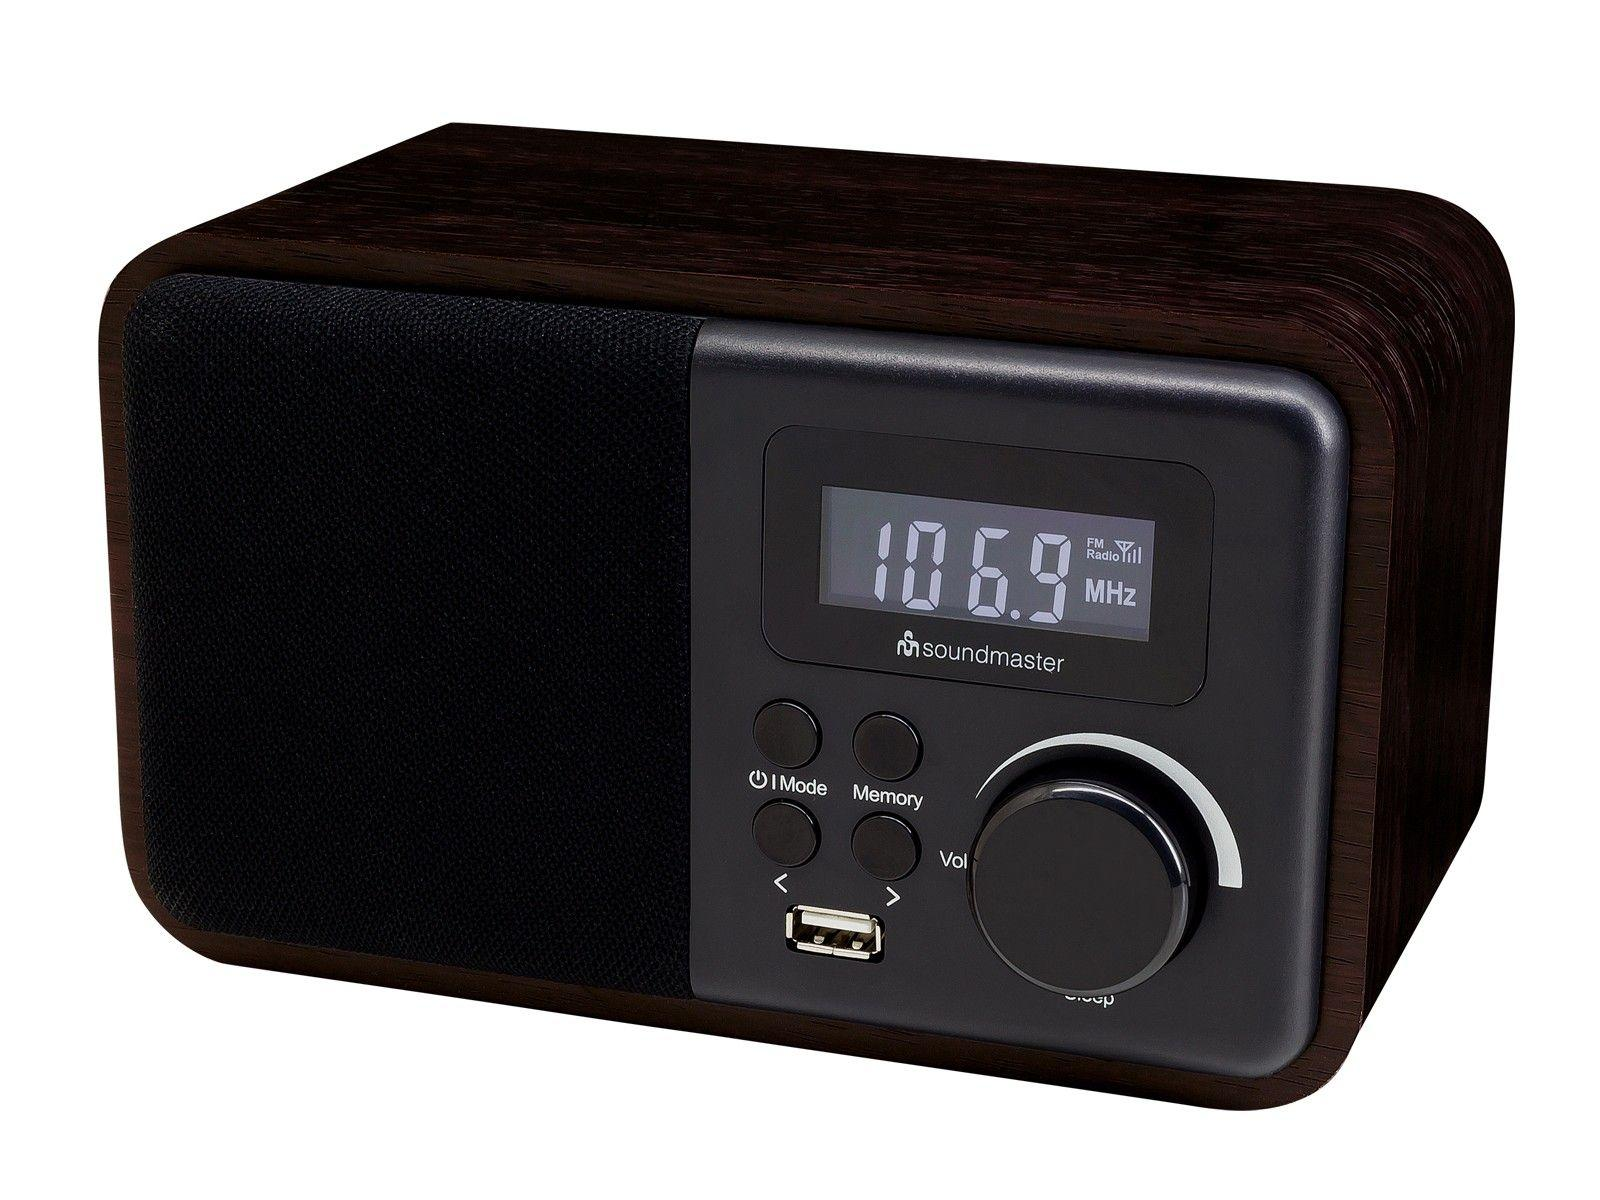 soundmaster TR250 Portable Bluetooth FM Radio Alarm Clock